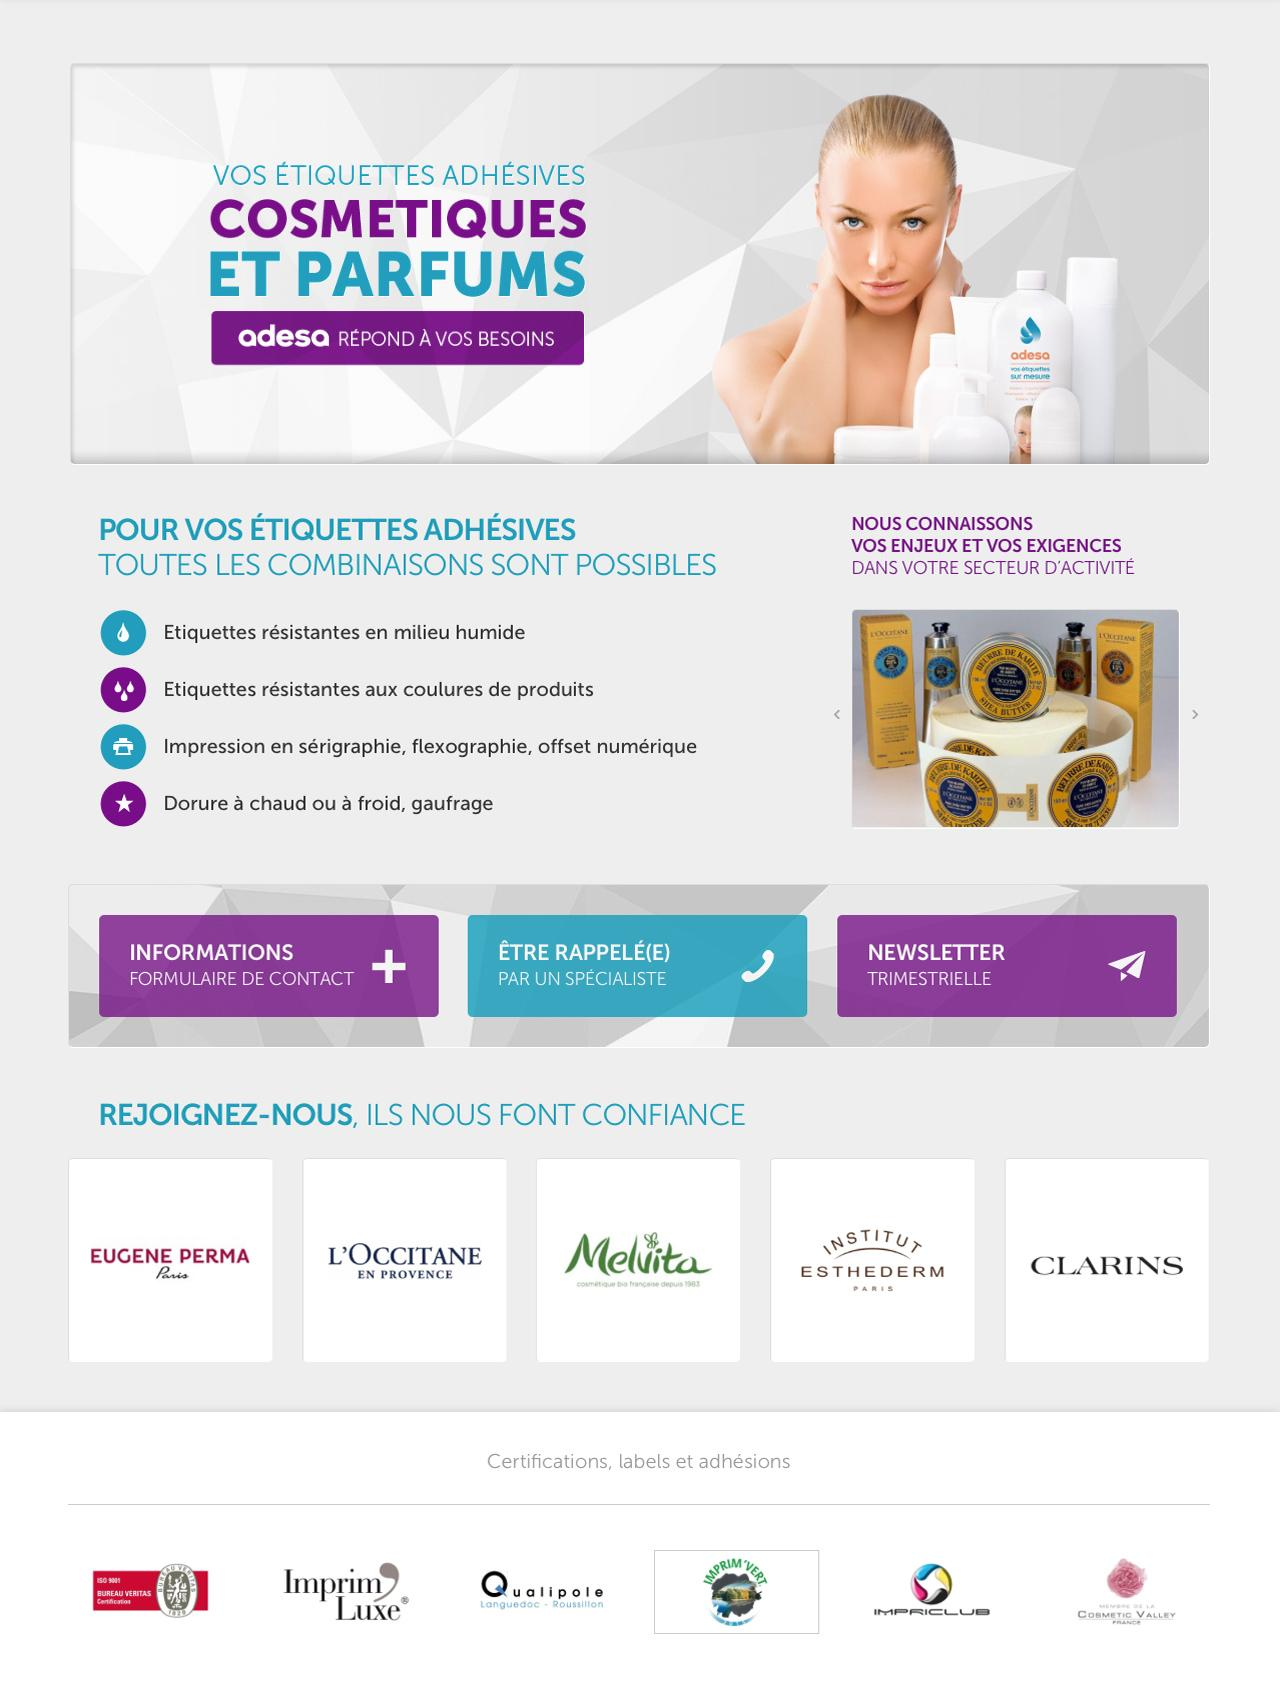 adesa-creation-interface-cosmetique-caconcept-alexis-cretin